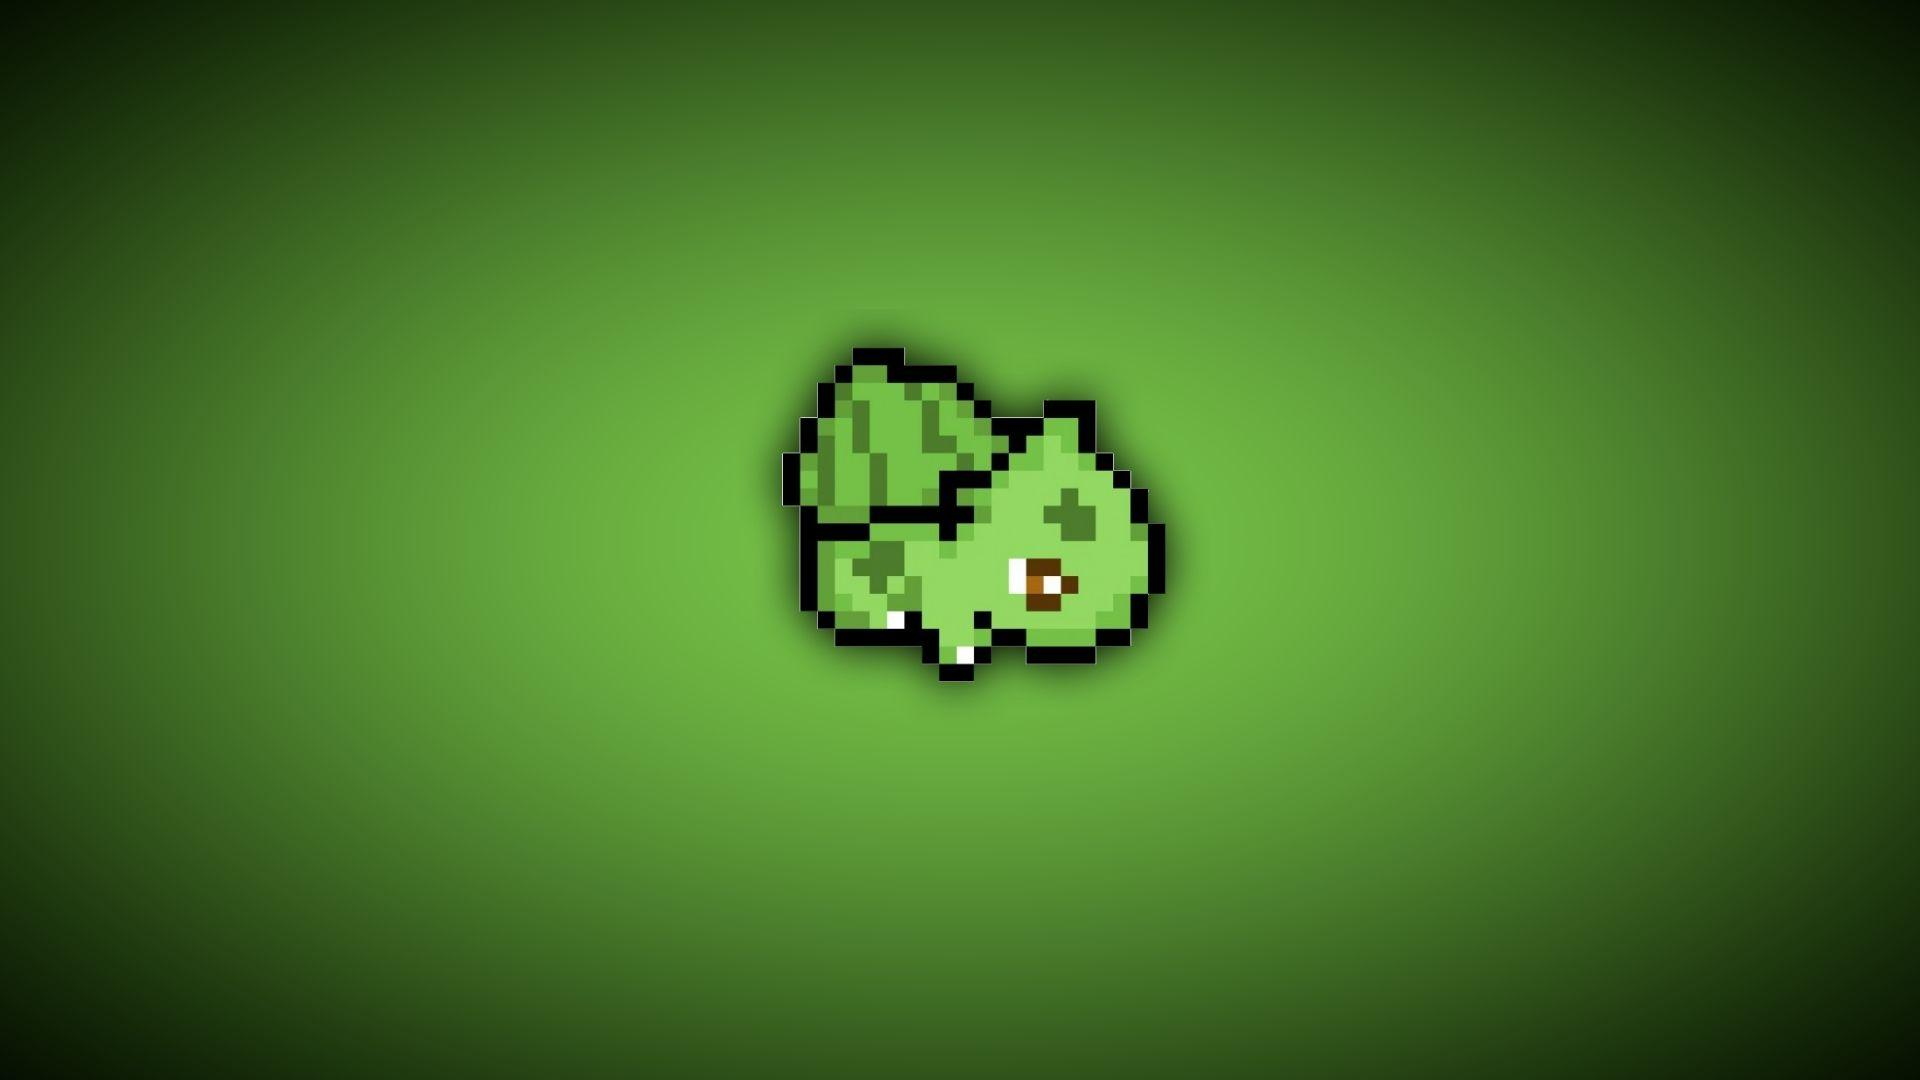 wallpaper.wiki-HD-Bulbasaur-Wallpaper-PIC-WPB0013357 - wallpaper.wiki